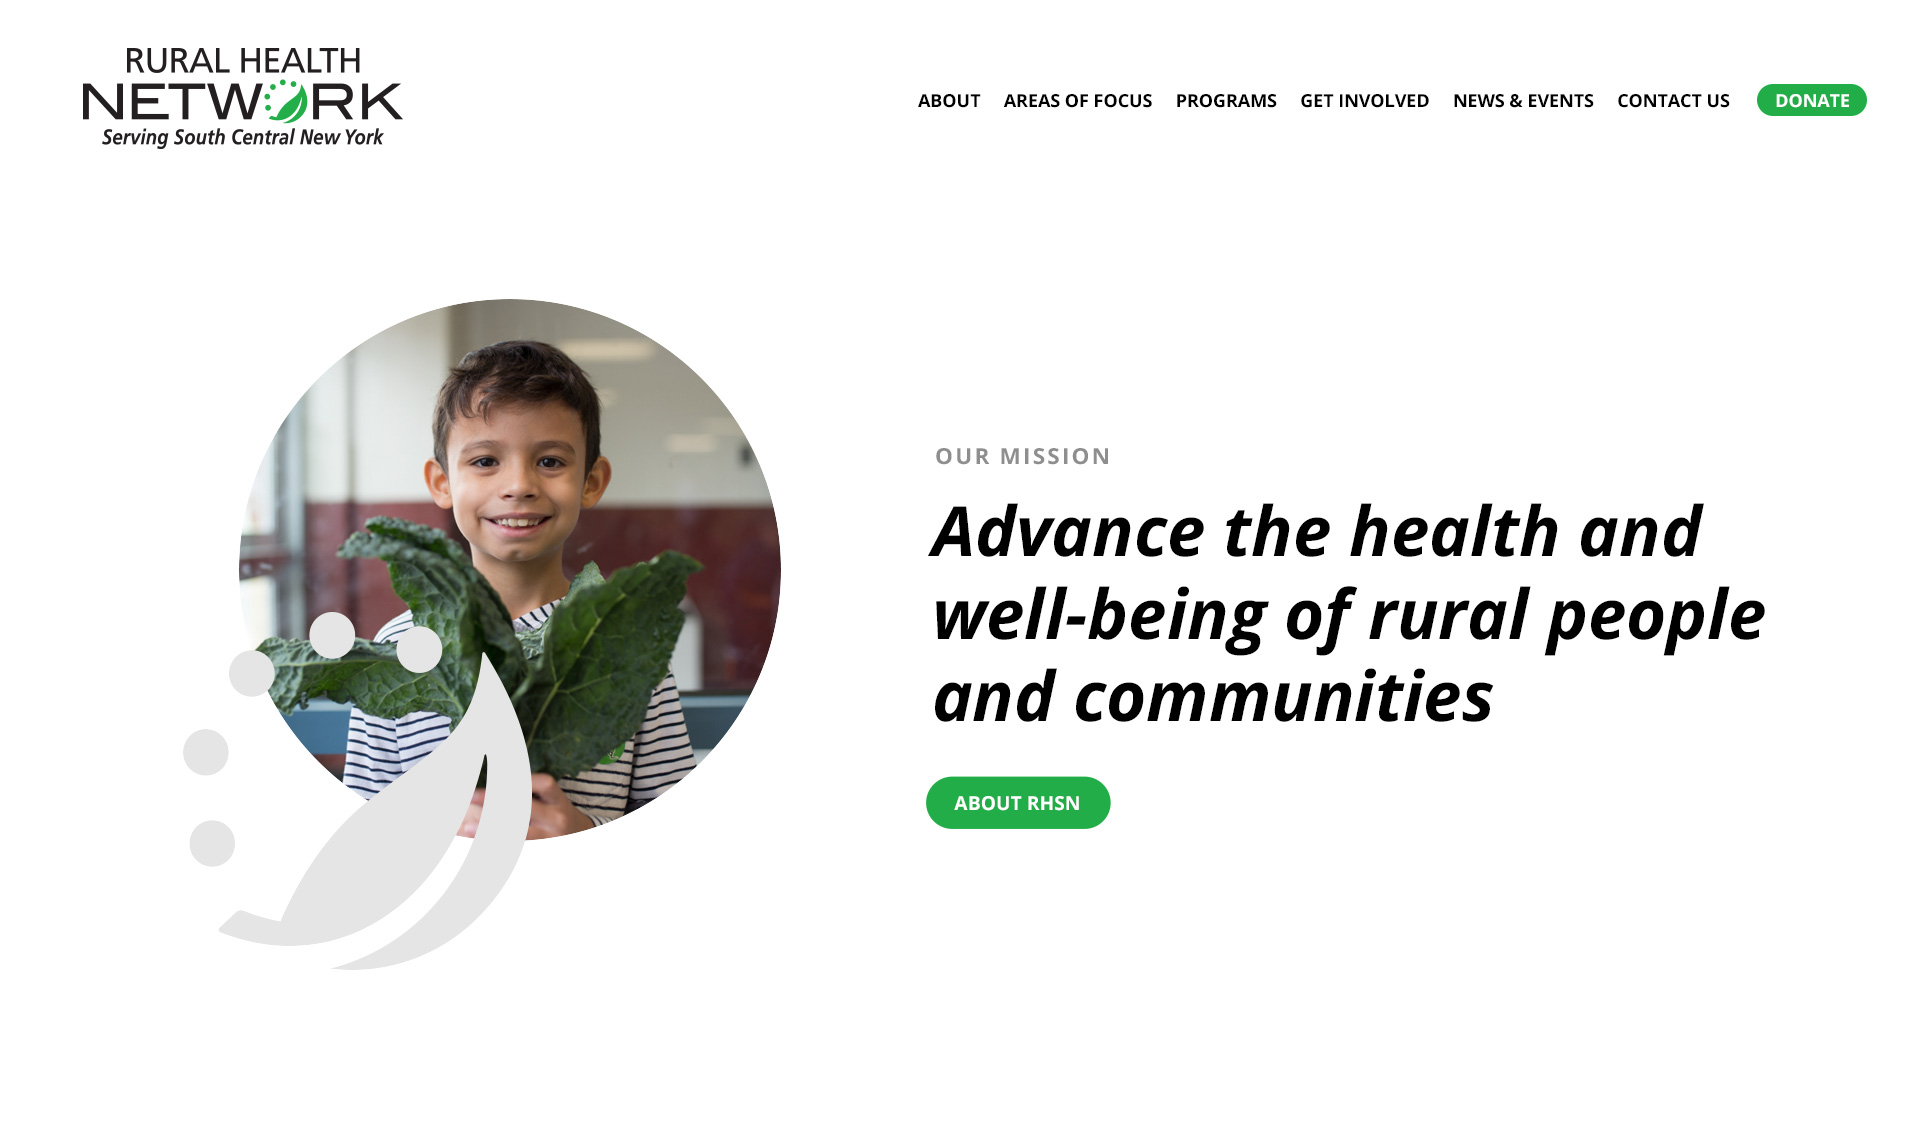 Rural Health Network new homepage